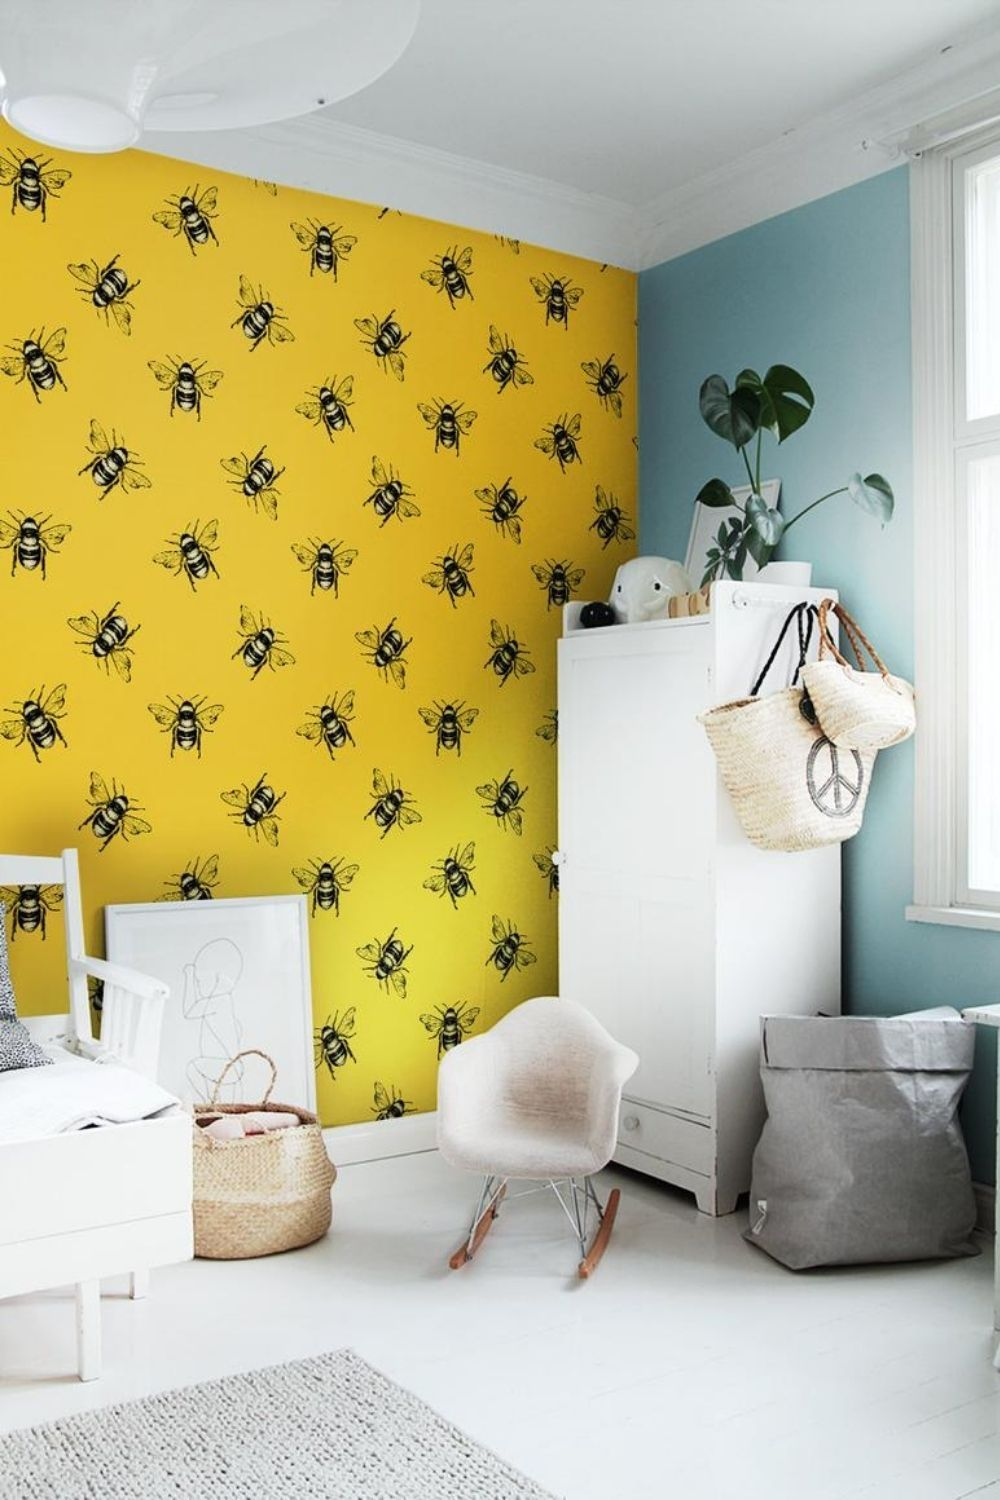 Bees Wallpaper Peel And Stick Wallpaper Yellow Black Etsy In 2021 Peel And Stick Wallpaper How To Install Wallpaper Yellow Wallpaper